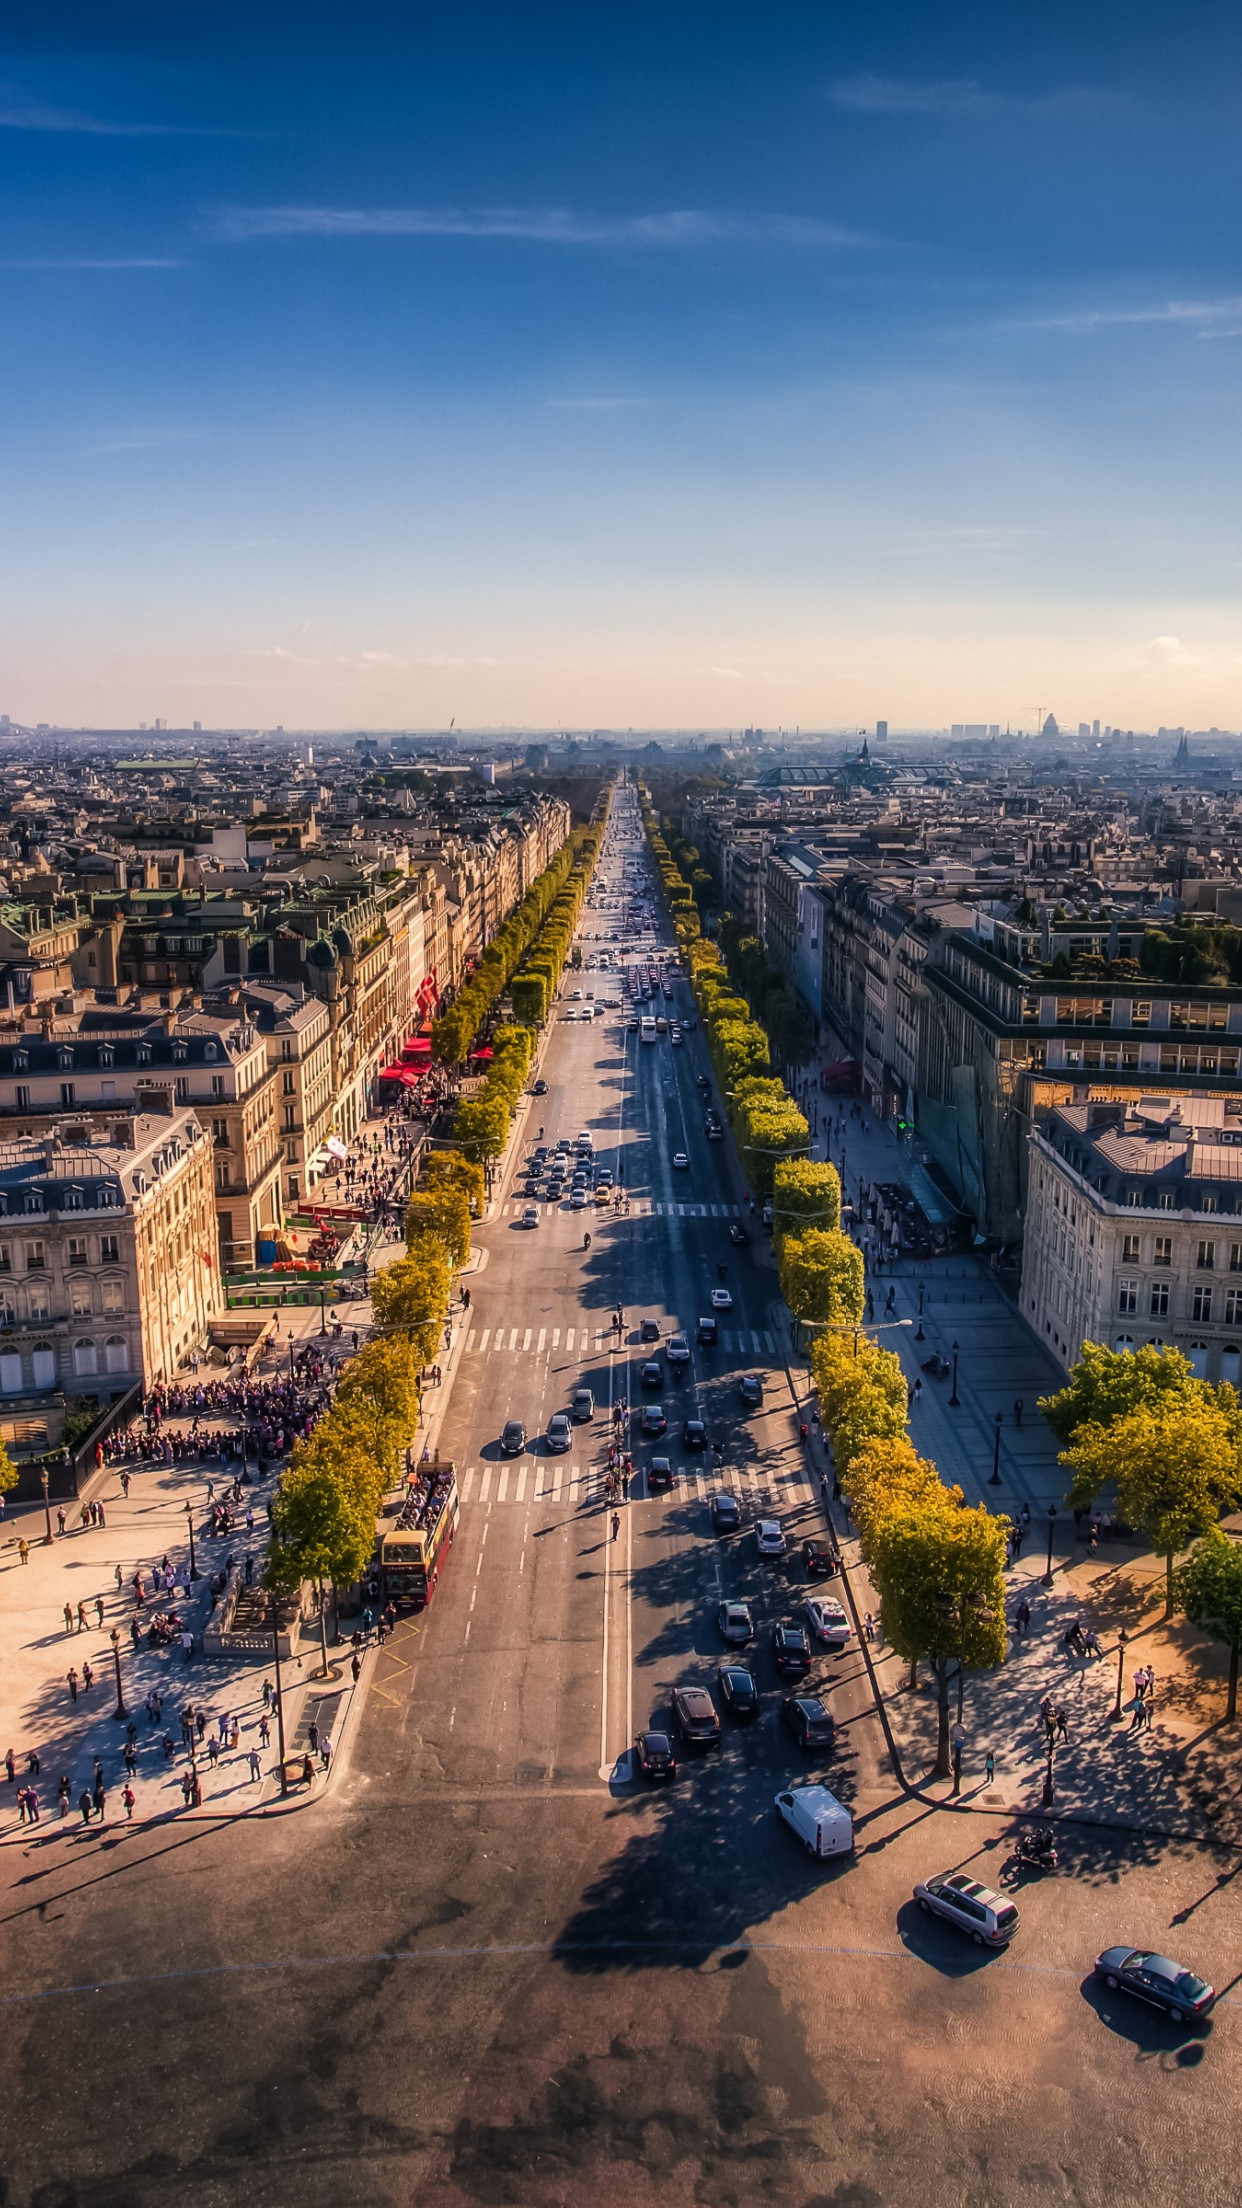 Champs Elysees. Paris, France wallpaper 1242x2208